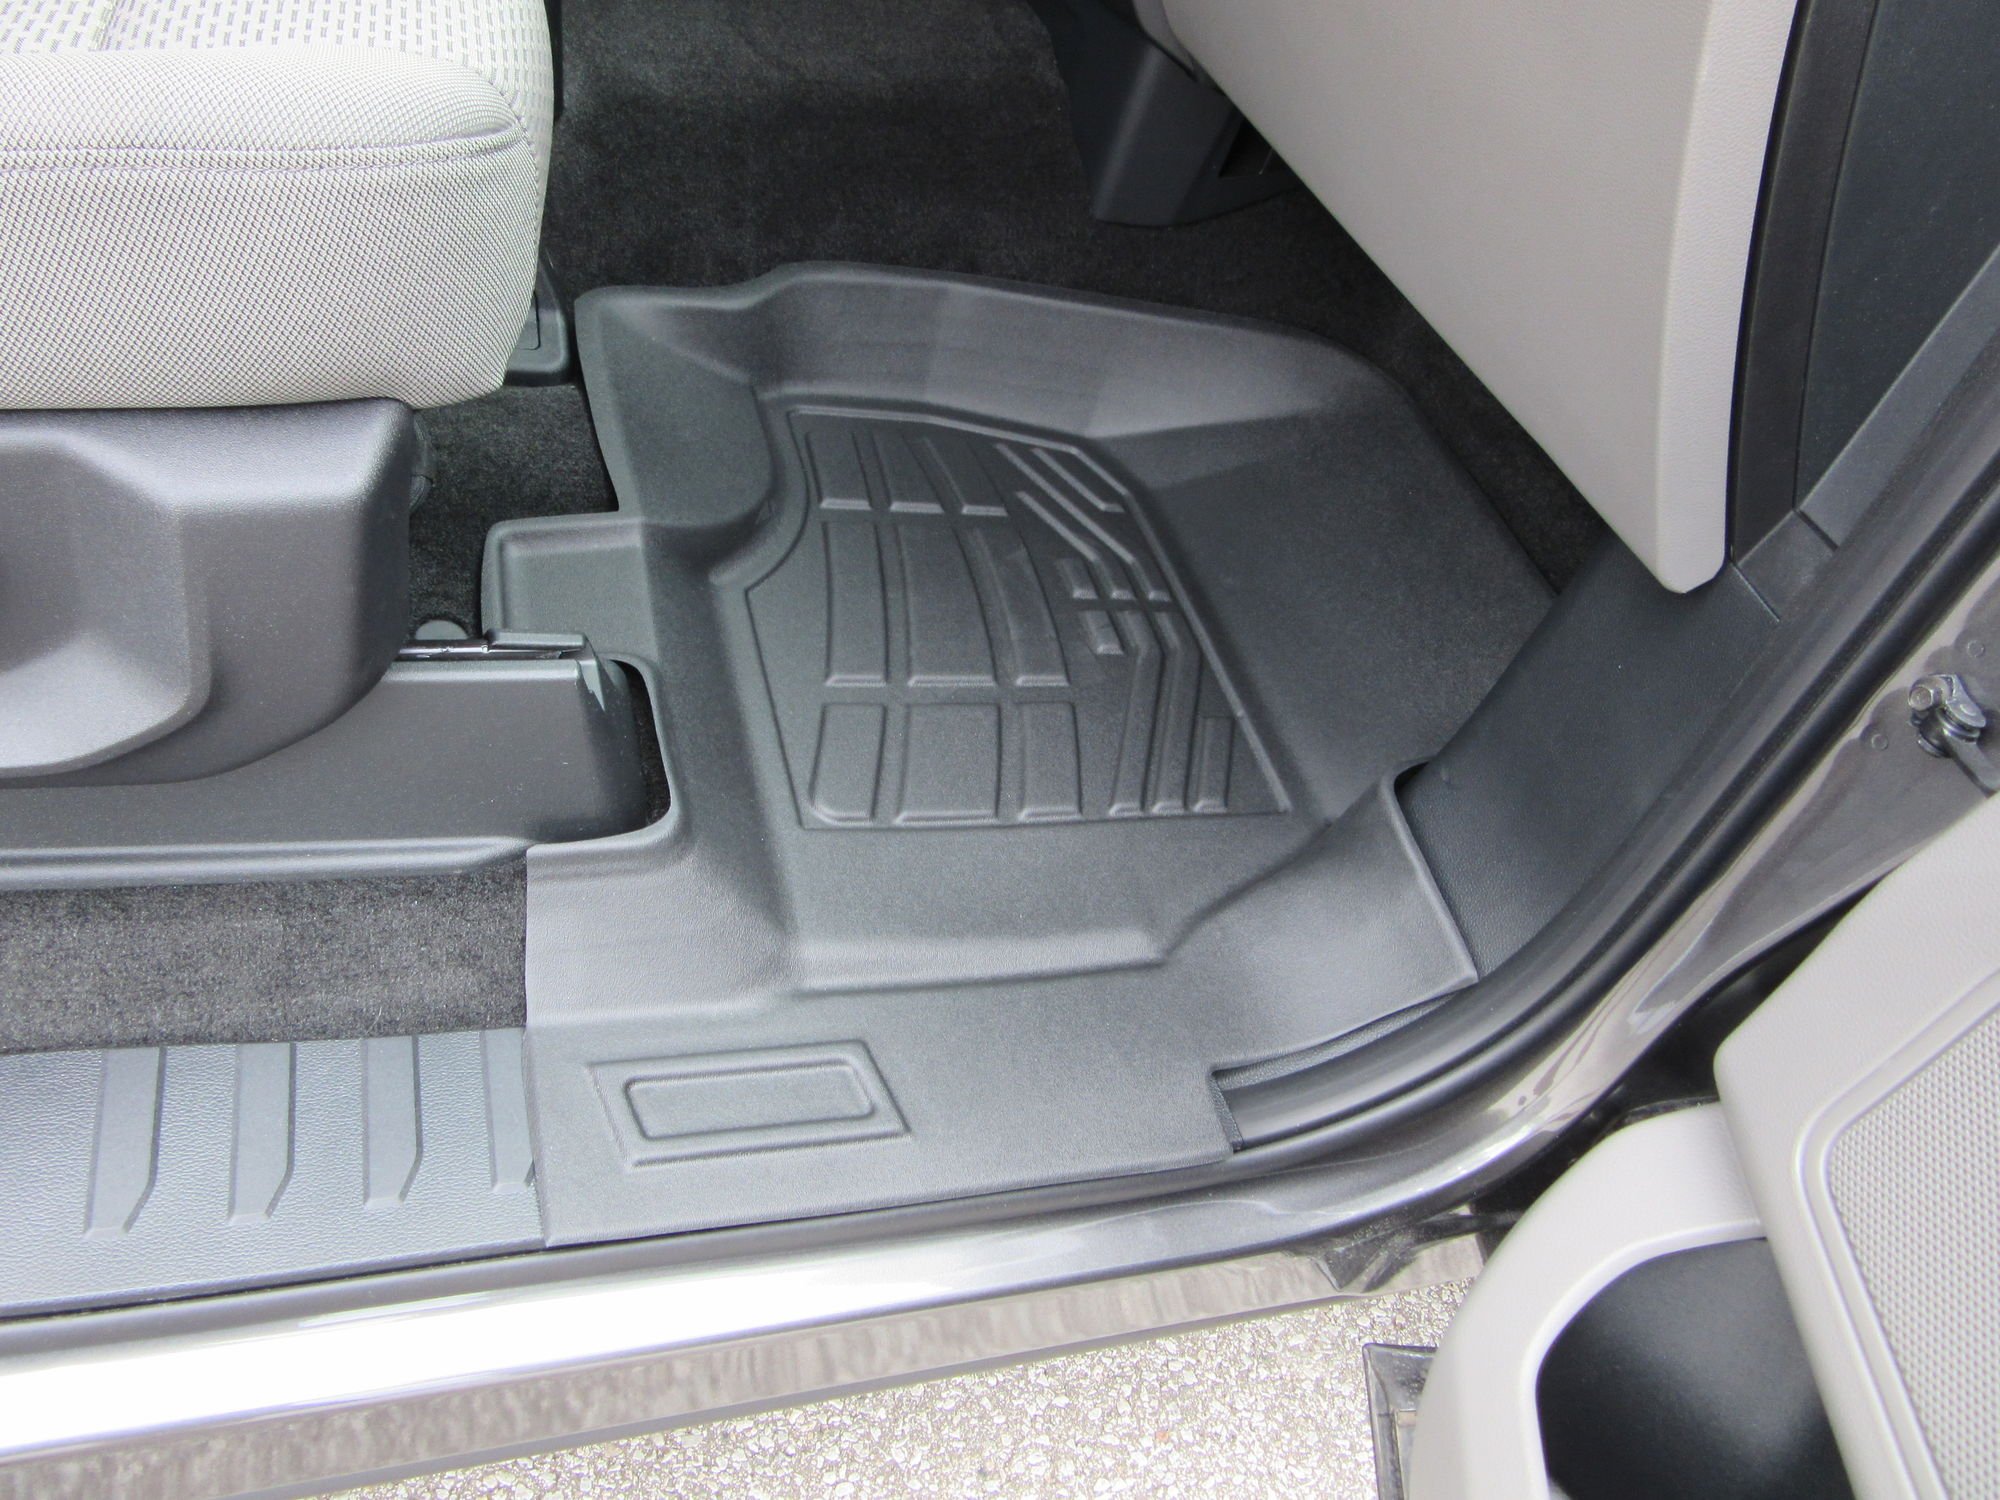 2016 Ford F150 Accessories >> 2015+ F150 accessories interior/exterior - Ford F150 Forum - Community of Ford Truck Fans